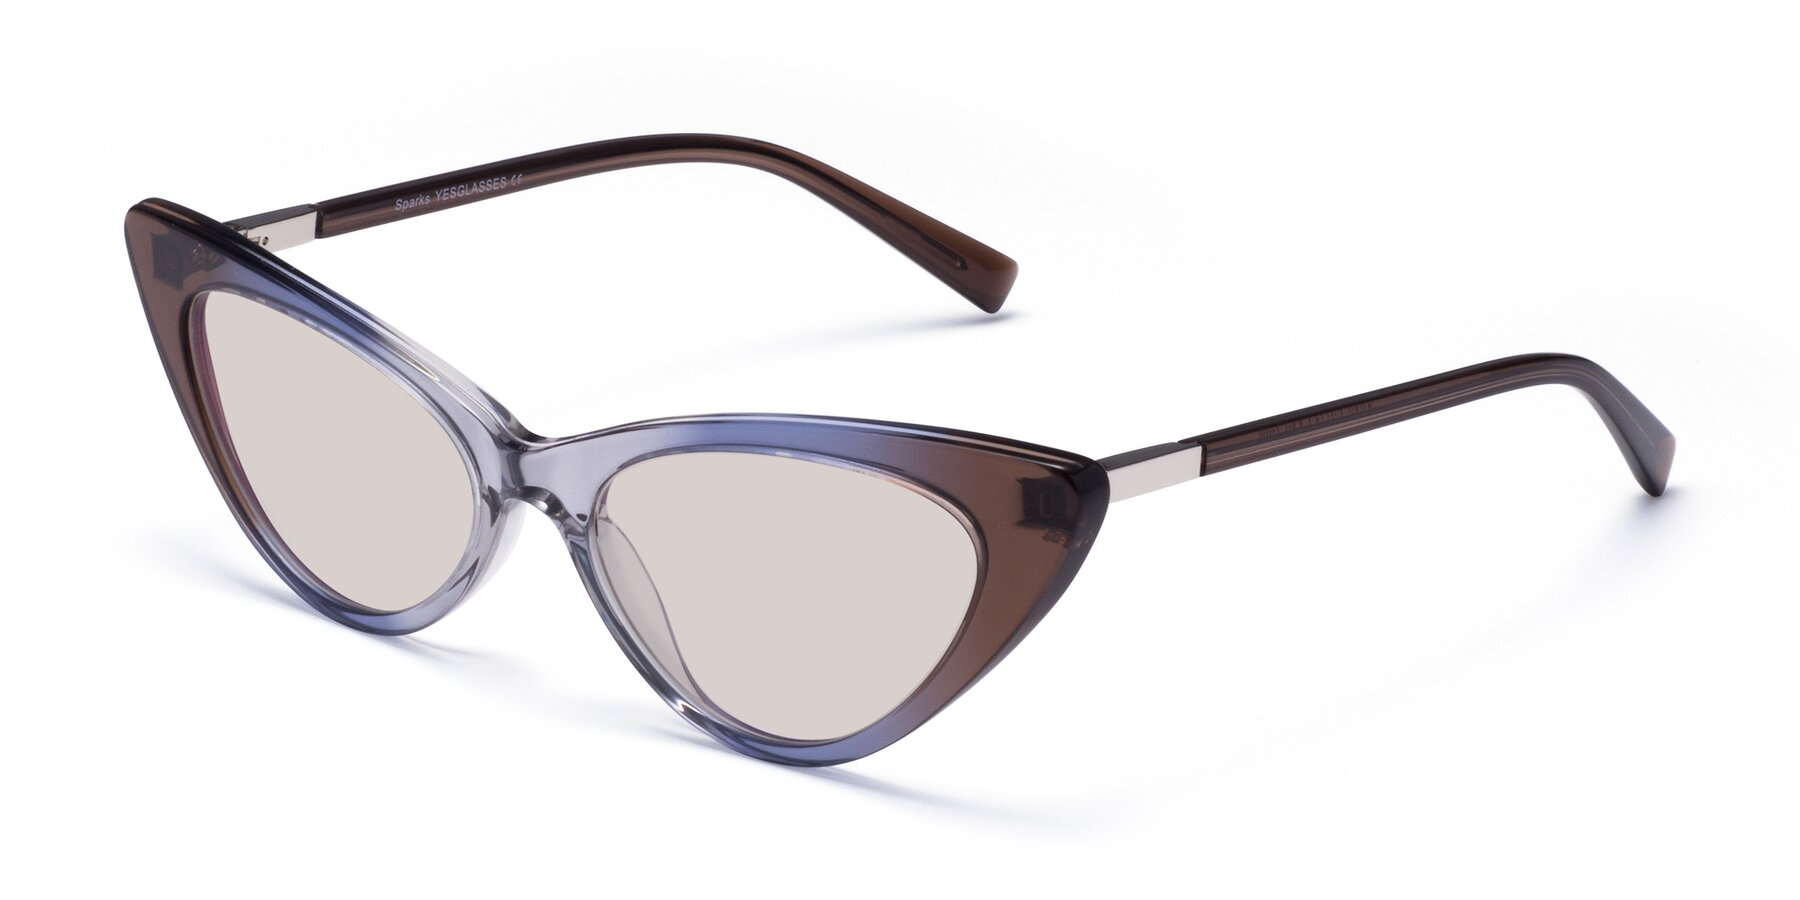 Angle of Sparks in Transparent Gradient Brown with Light Brown Tinted Lenses